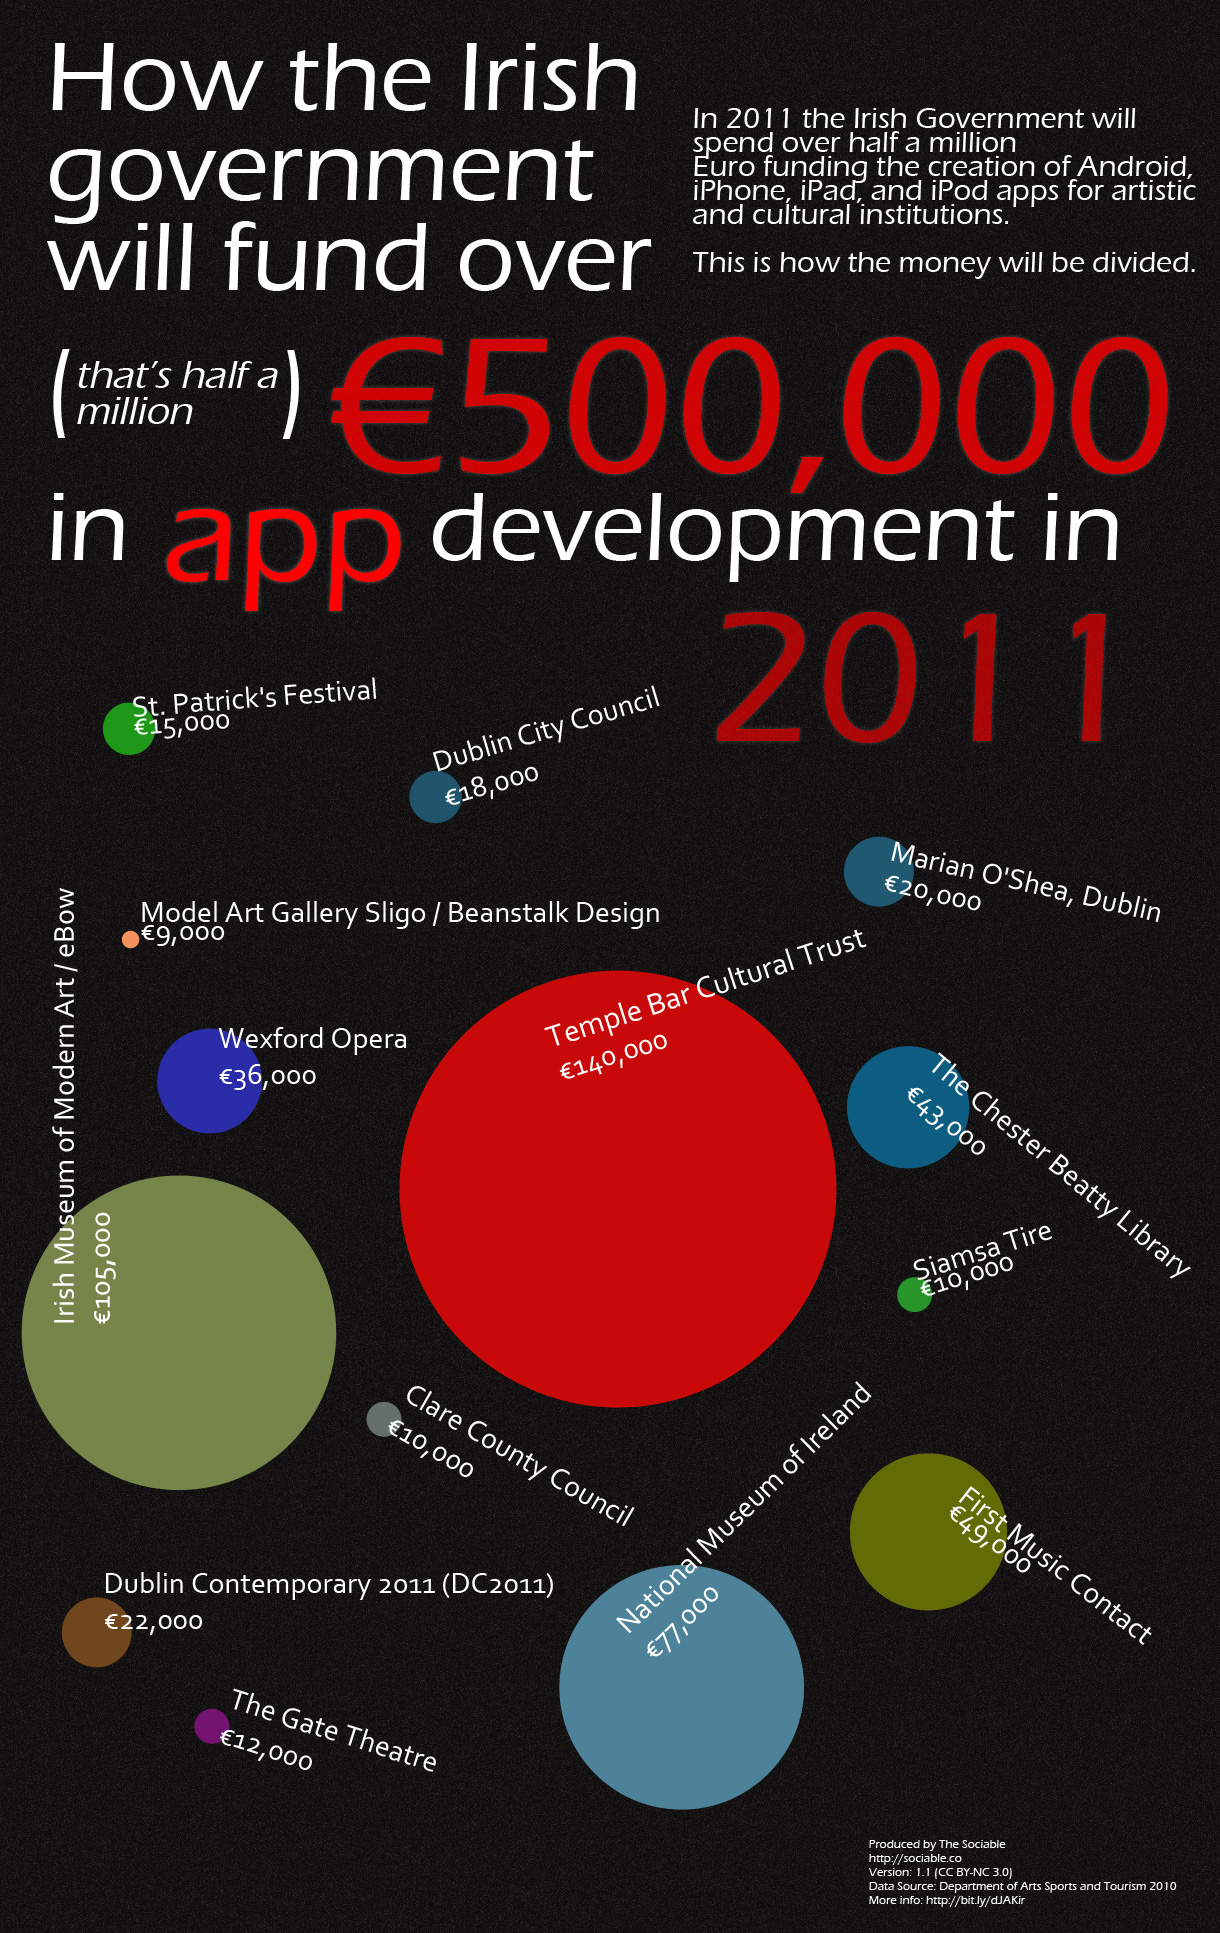 smartphone applications are developed by ____